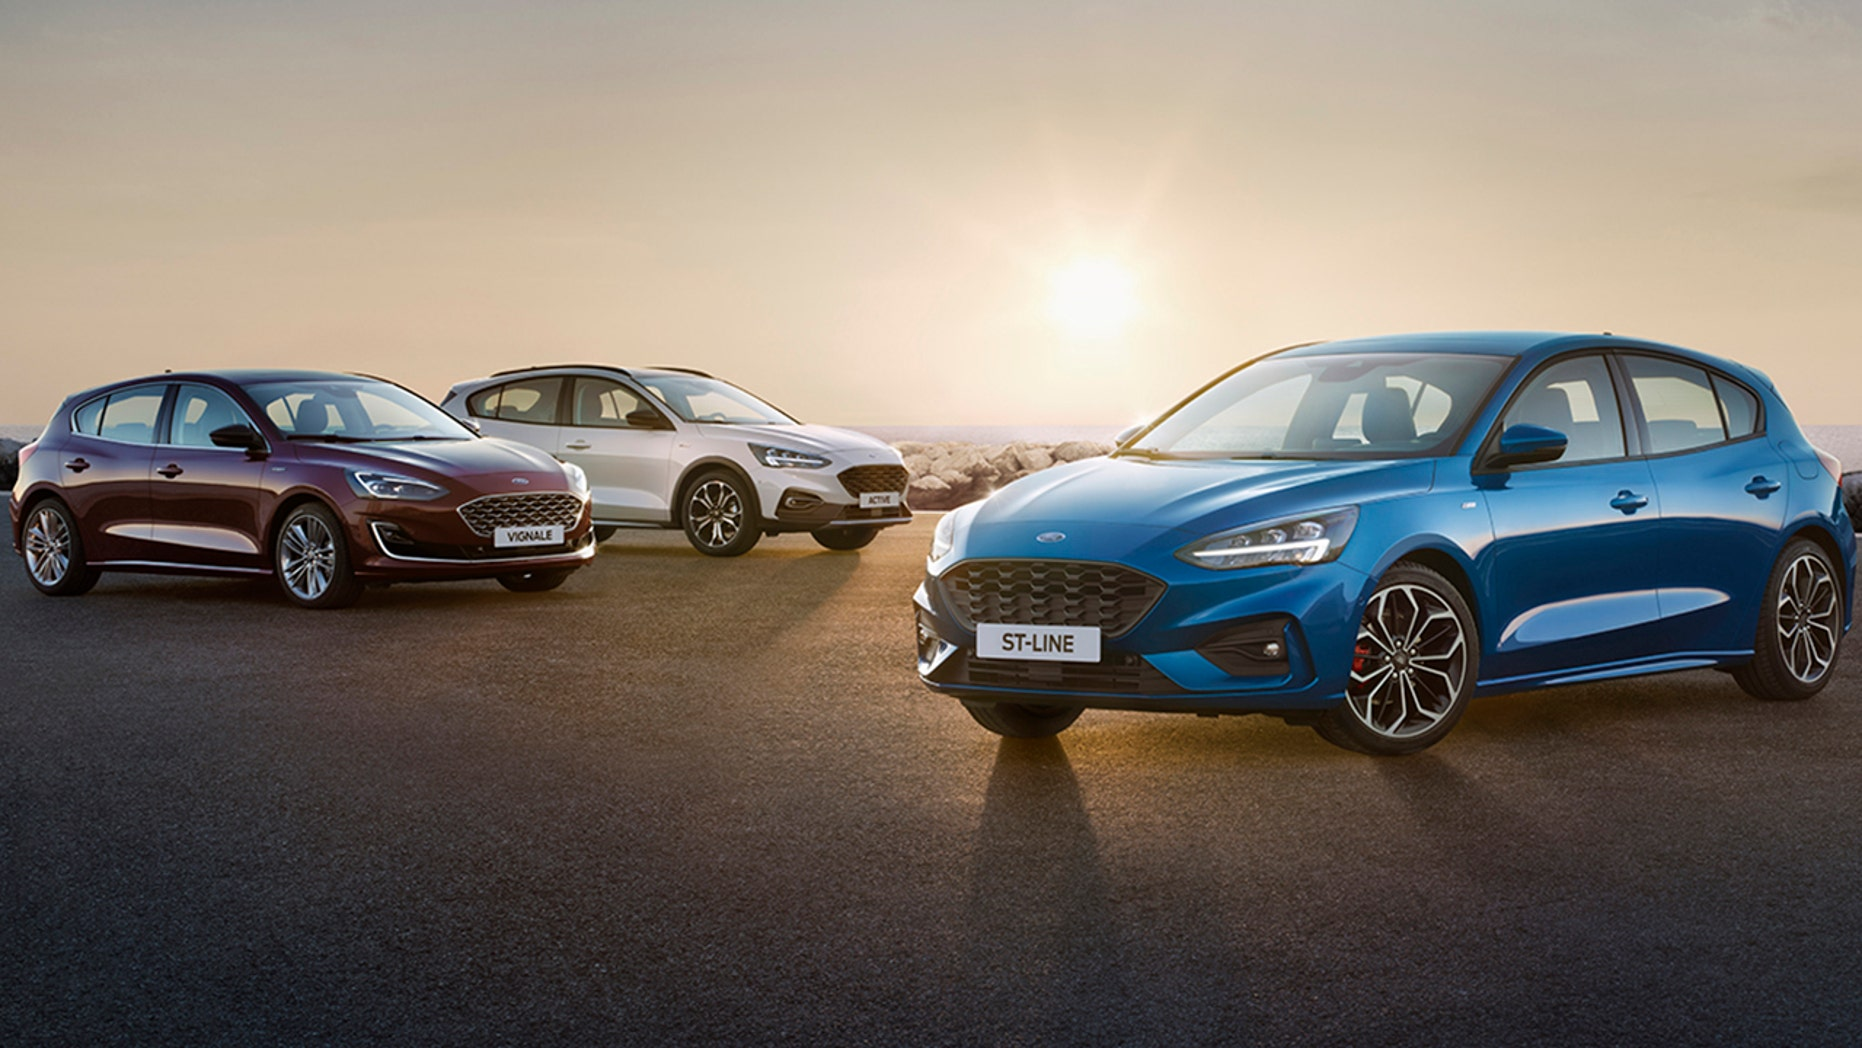 Ford Today Introduces The All New Focus Car For Global Customers Featuring The Latest